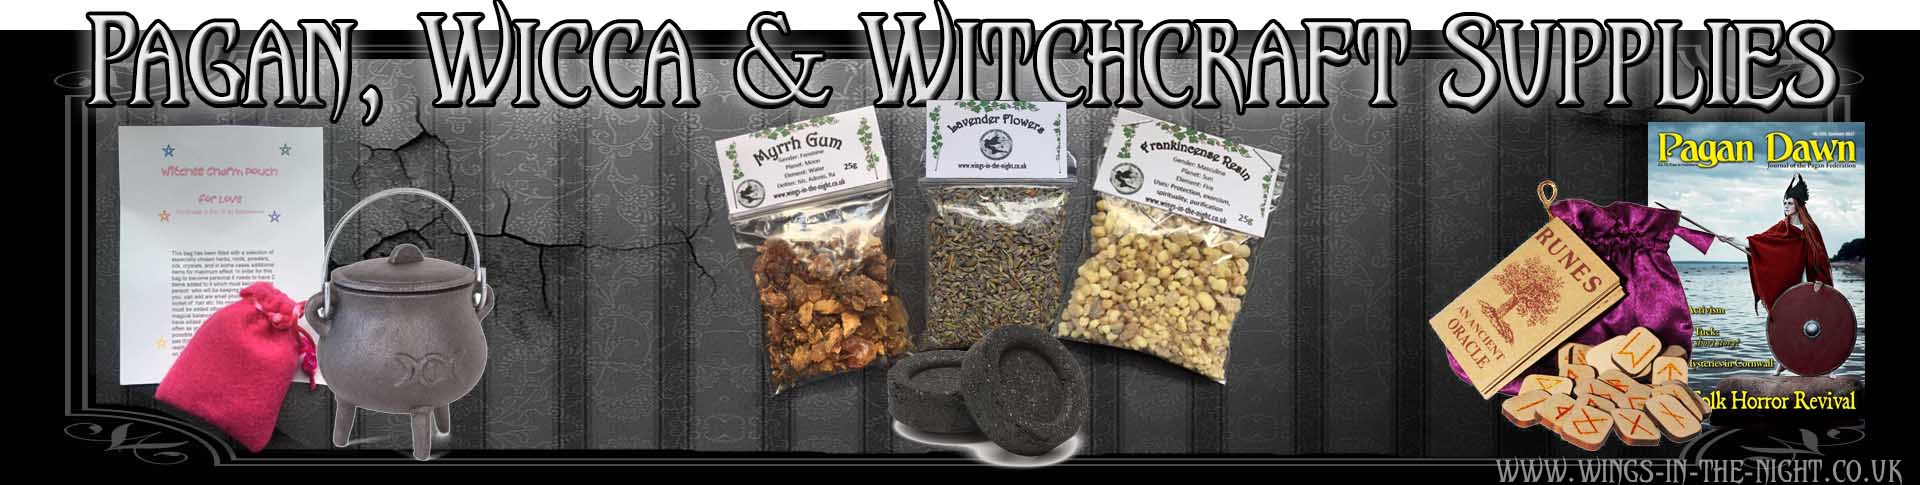 Pagan, Wicca, Witchcraft Shop | Newquay, Cornwall | Resins, Magical Herbs, Spell Kits, Altar Tools, Incense, Wands, Ritual Supplies